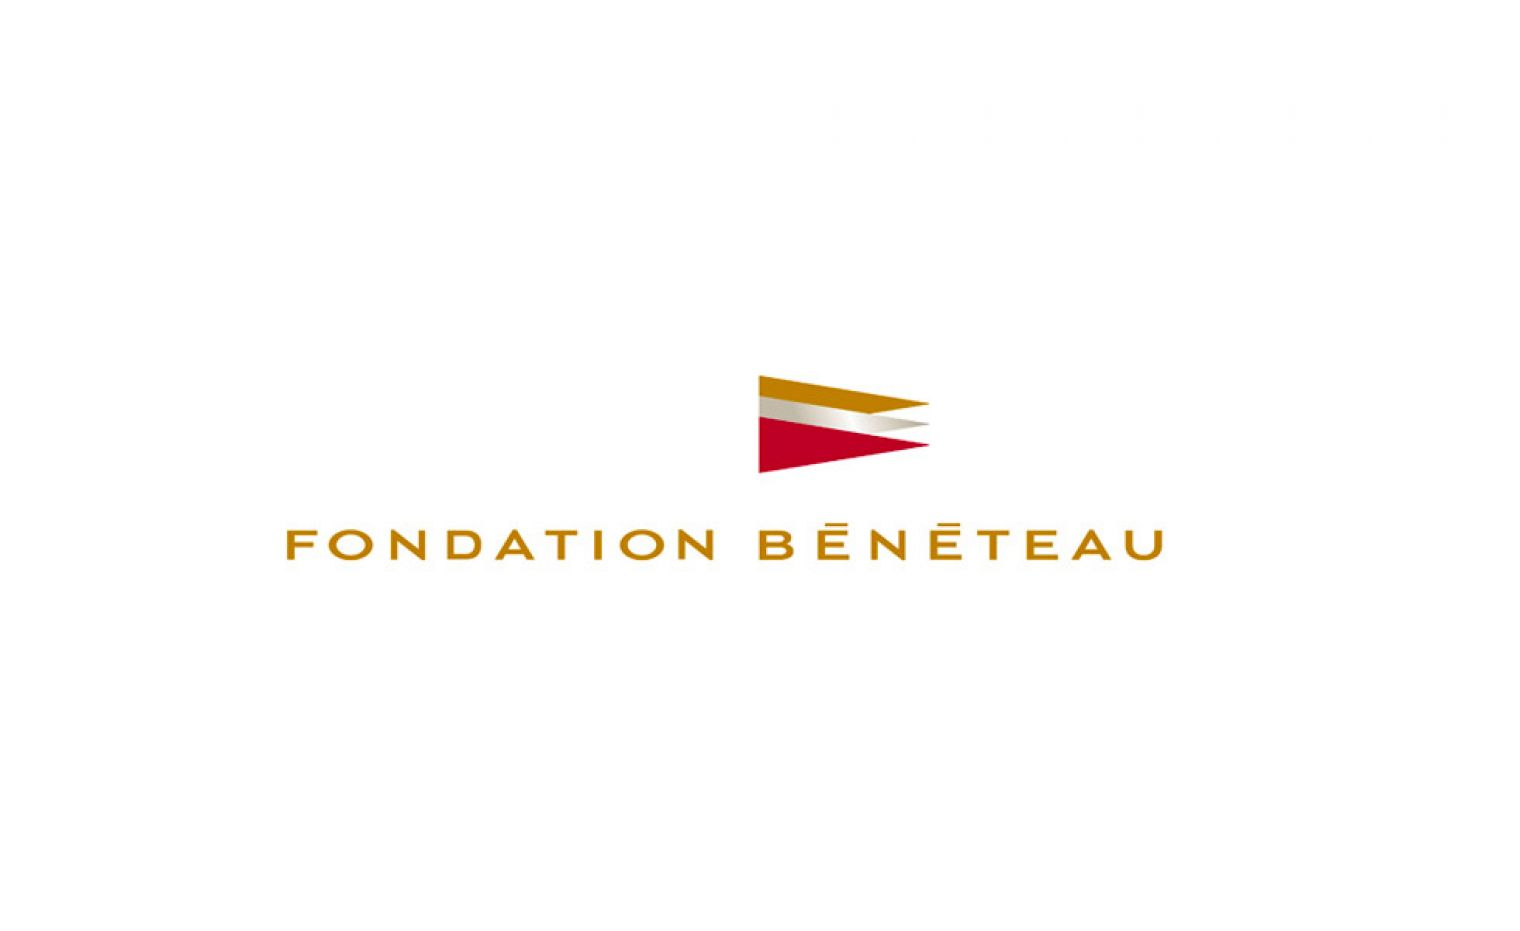 Lagoon will judge the 2017 Bénéteau Foundation architecture contest